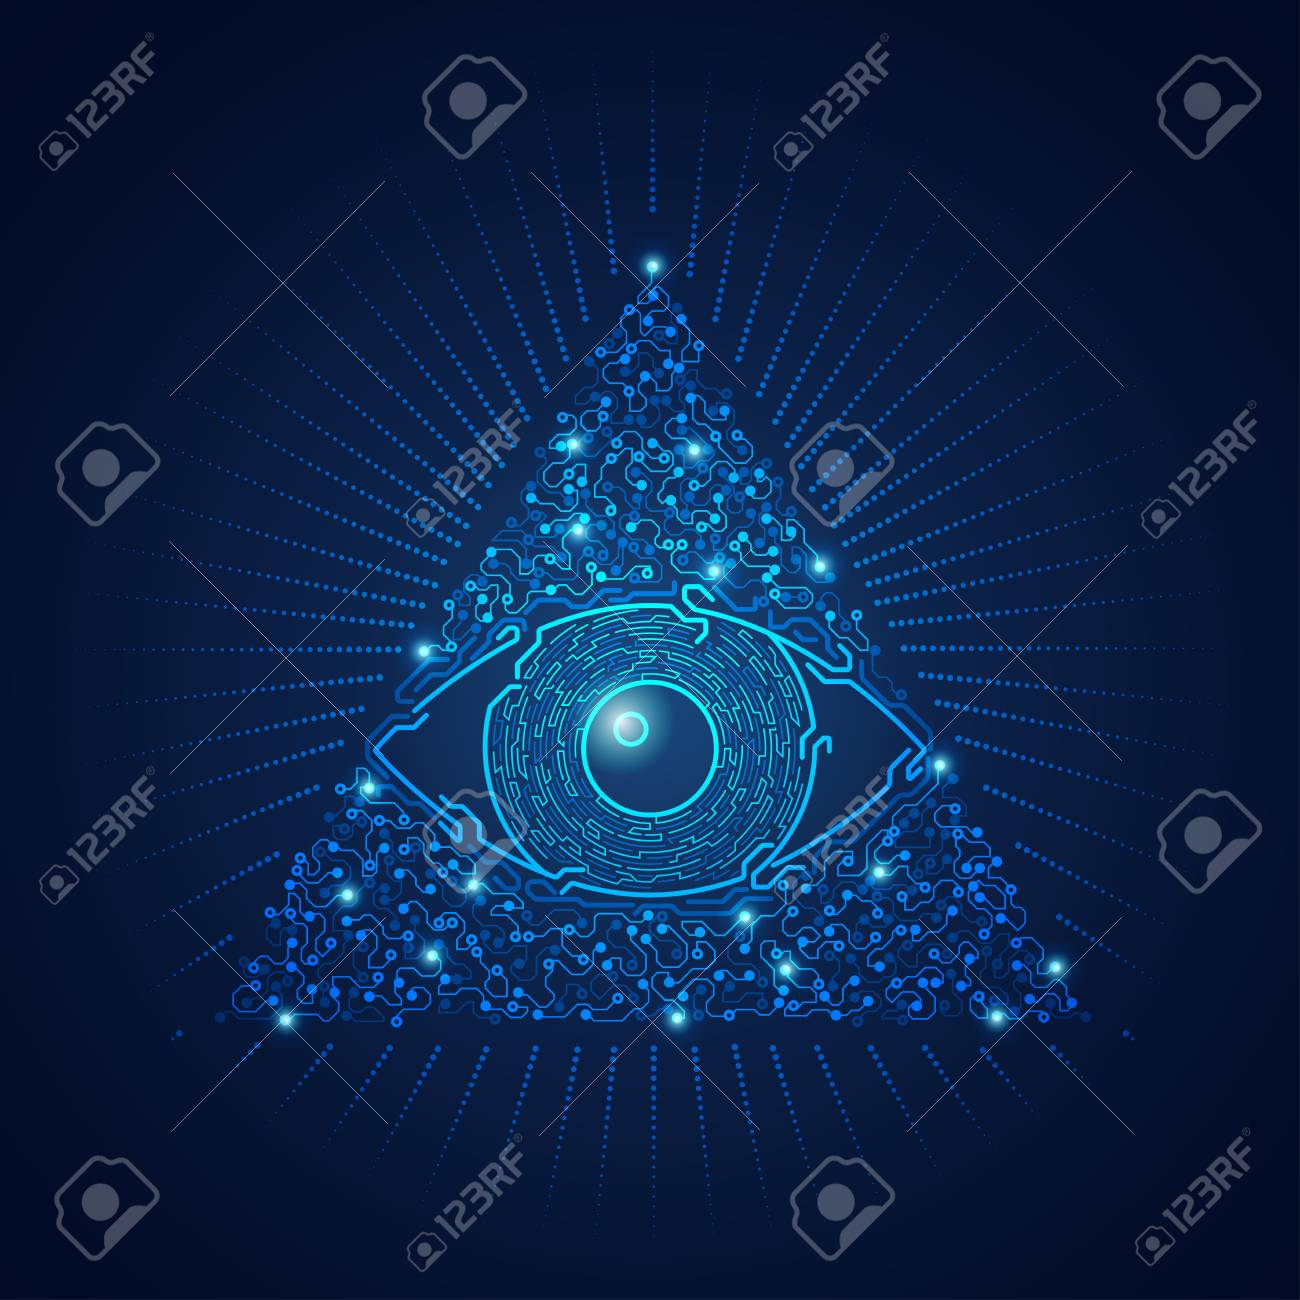 graphic of triangle electronical eye presented in futuristic style - 95891466